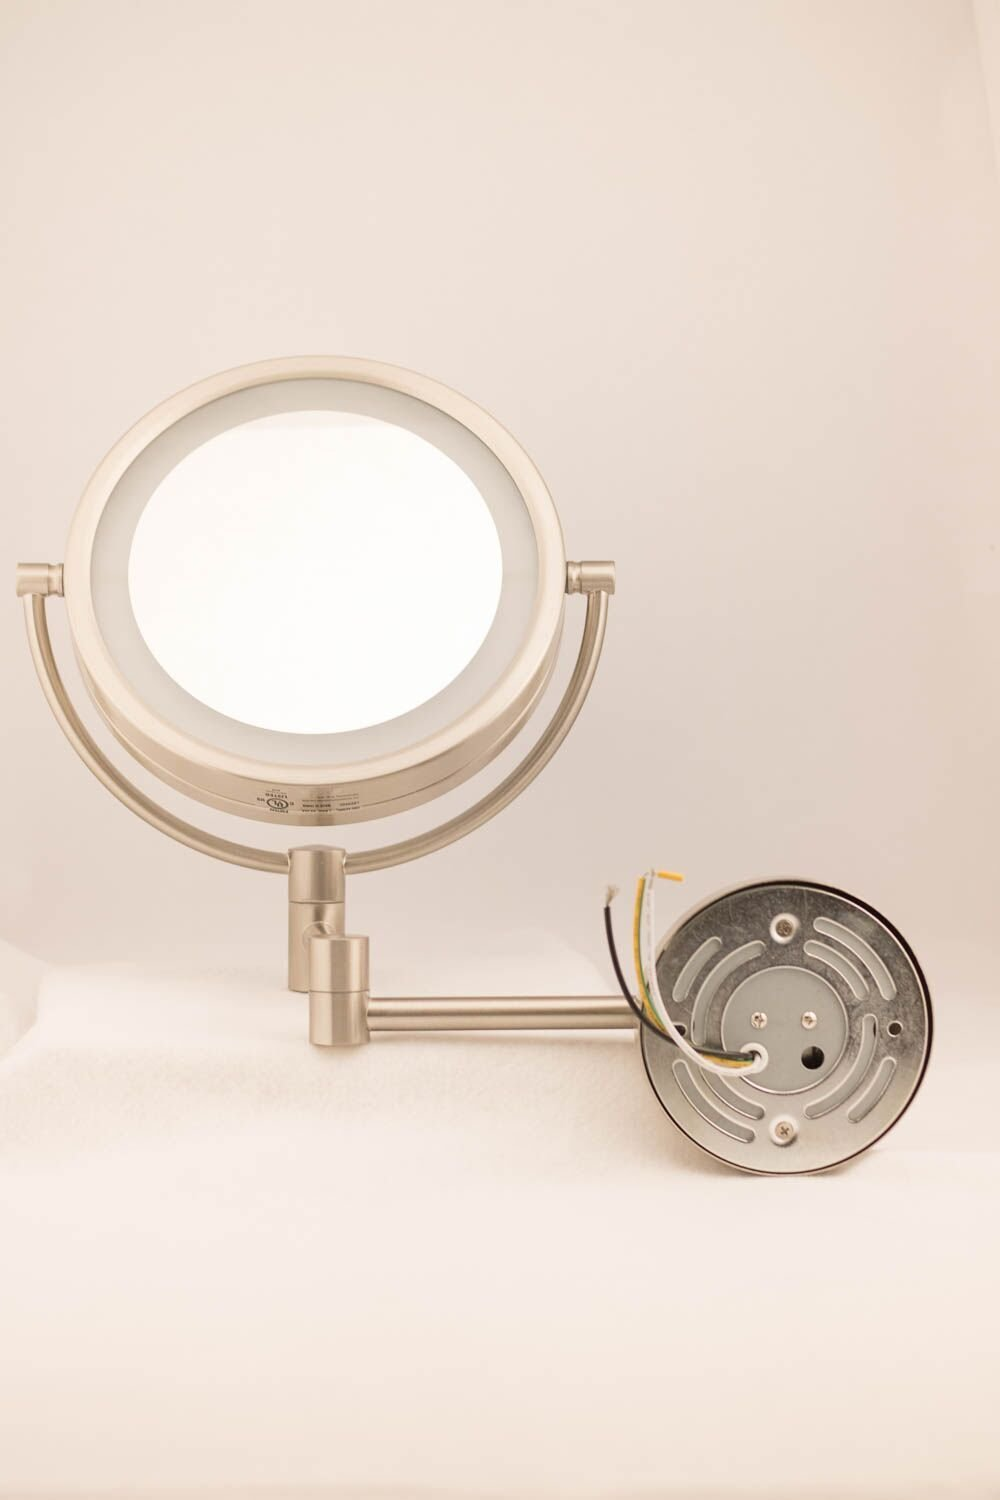 Jerdon HL88NLD 8.5-Inch LED Lighted Direct Wire Direct Wire Makeup Mirror with 8x Magnification, Nickel Finish by Jerdon (Image #2)